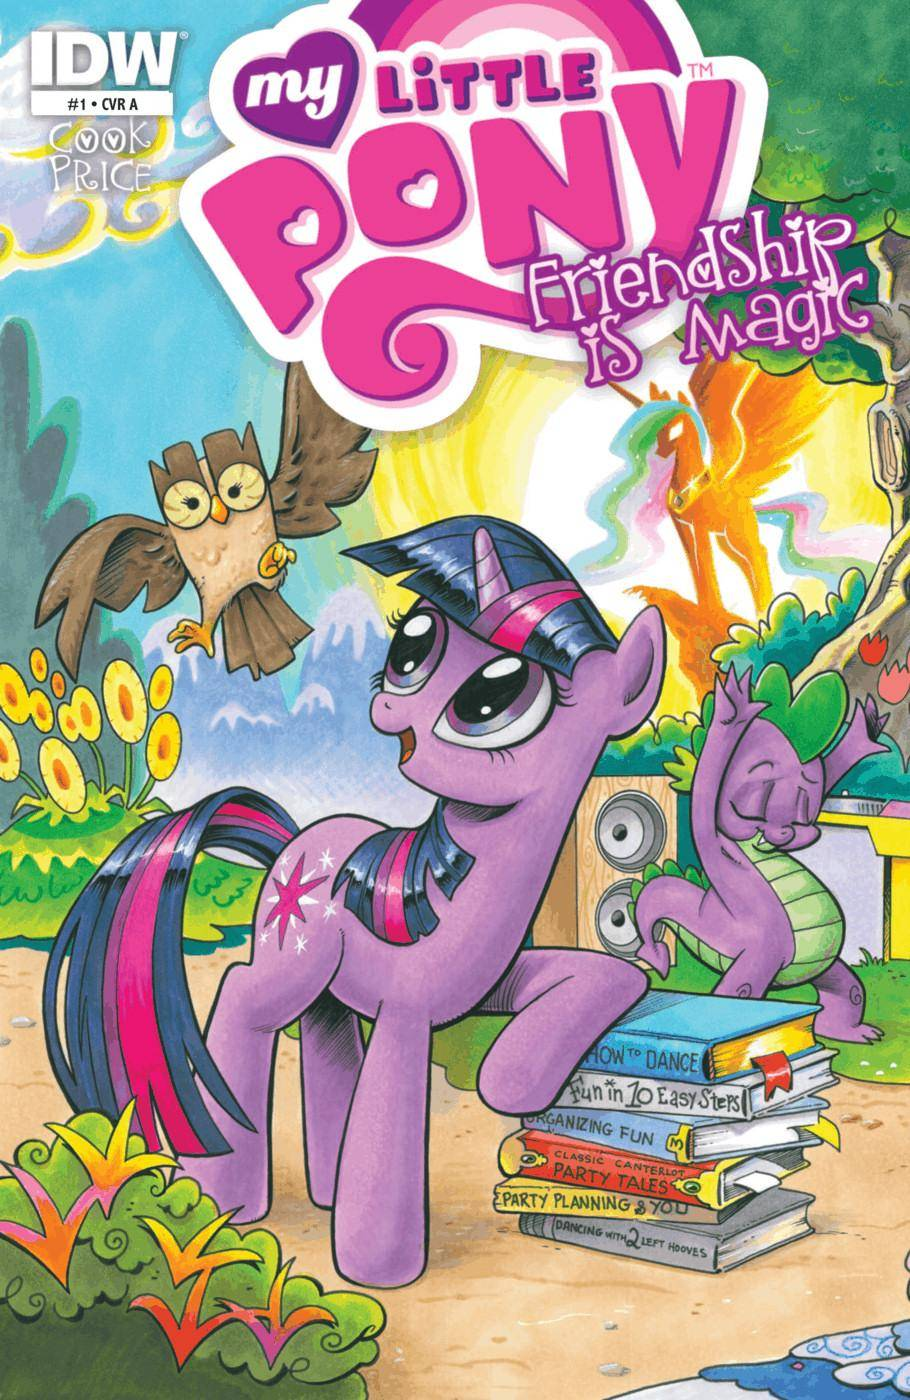 My Little Pony - Friendship Is Magic 001 2012 6 covers